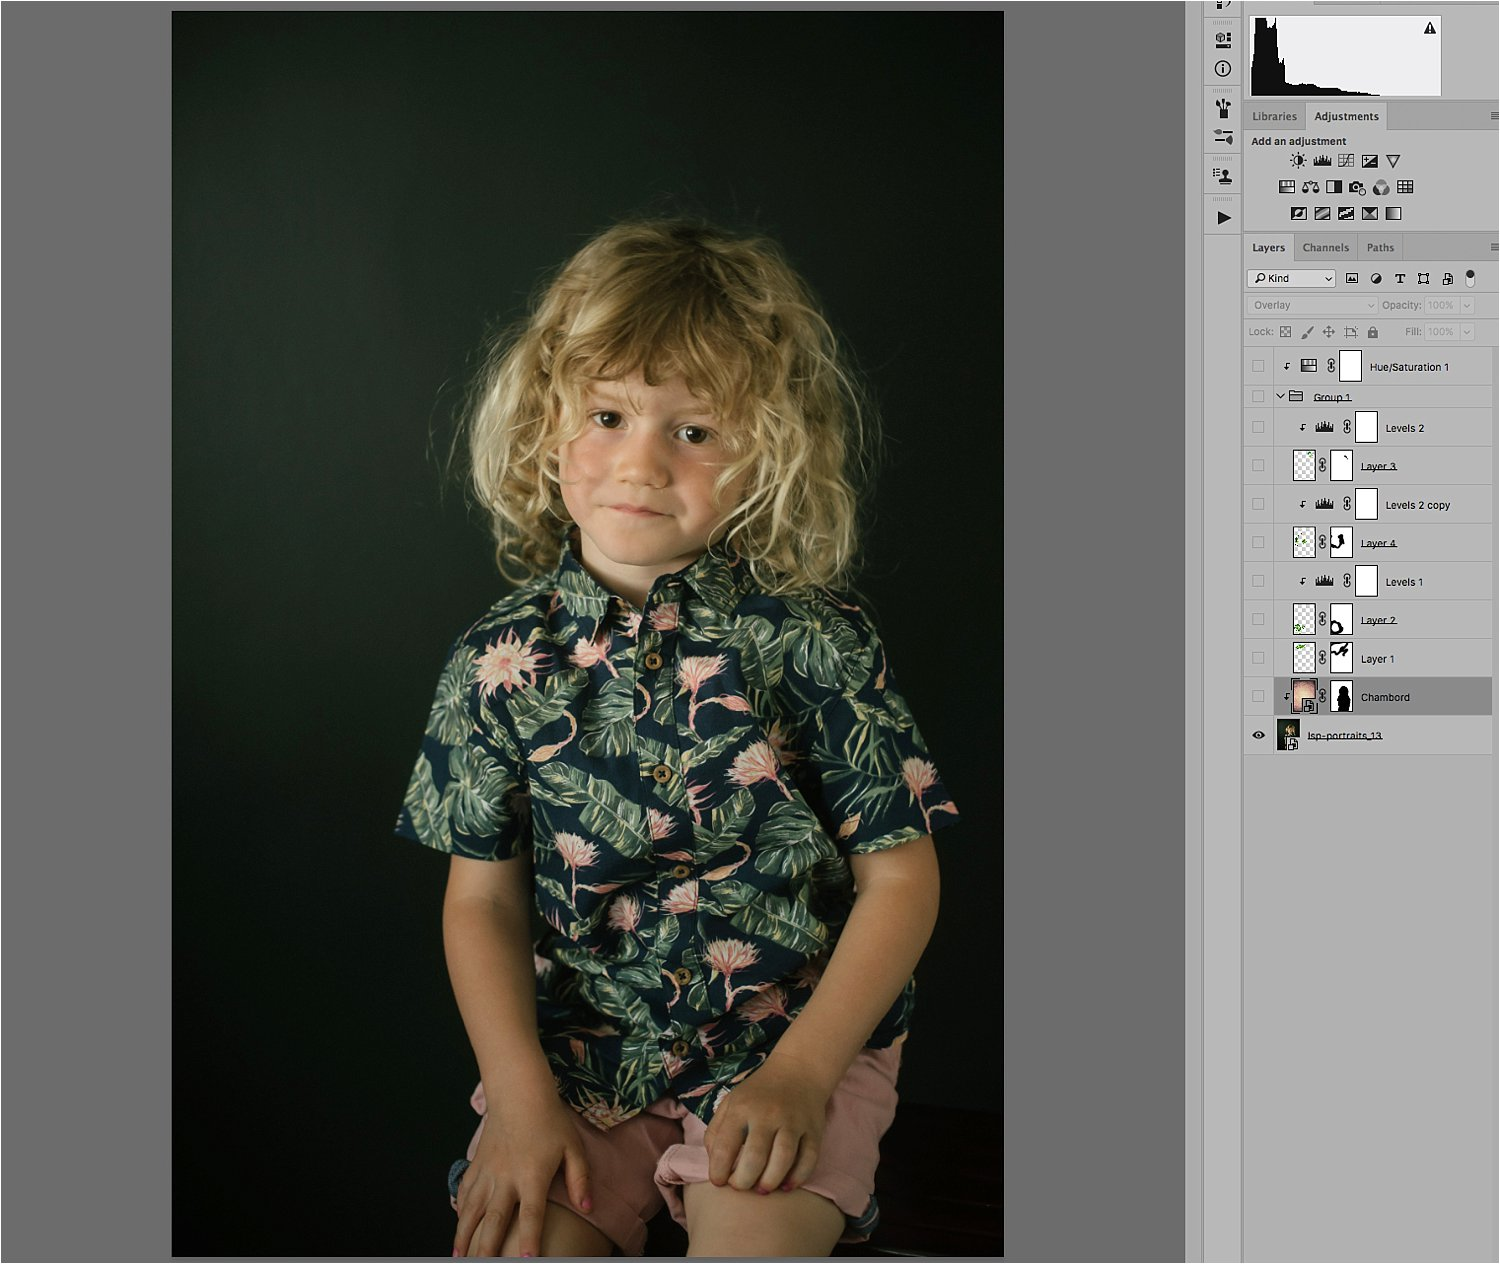 file and layers in Photoshop - Basic Photoshop Tutorial - How to Add a Texture Overlay to Your Portraits